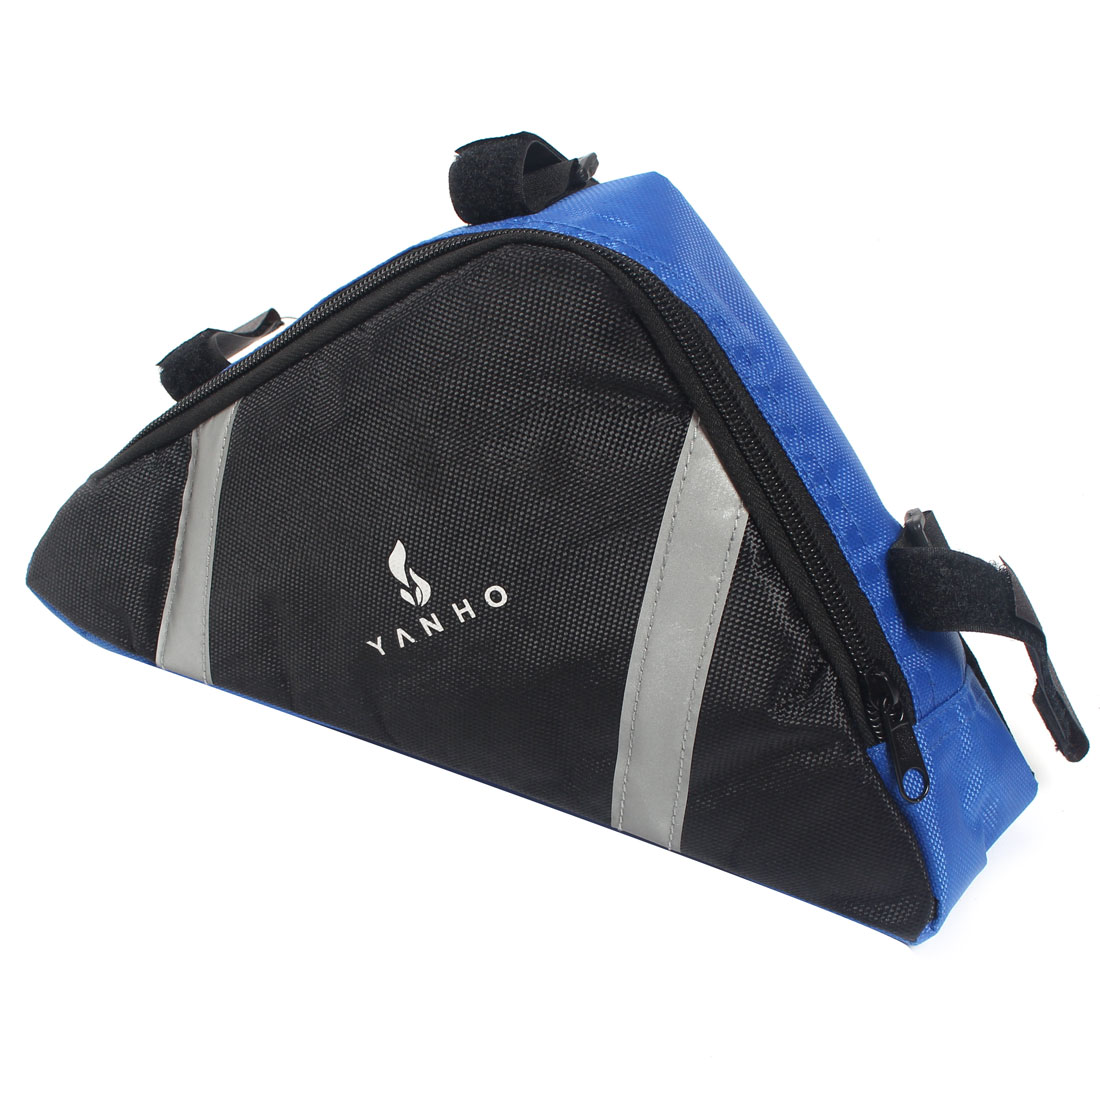 Bicycle Bike Cycling Triangle Front Tube Saddle Bag Holder Blue